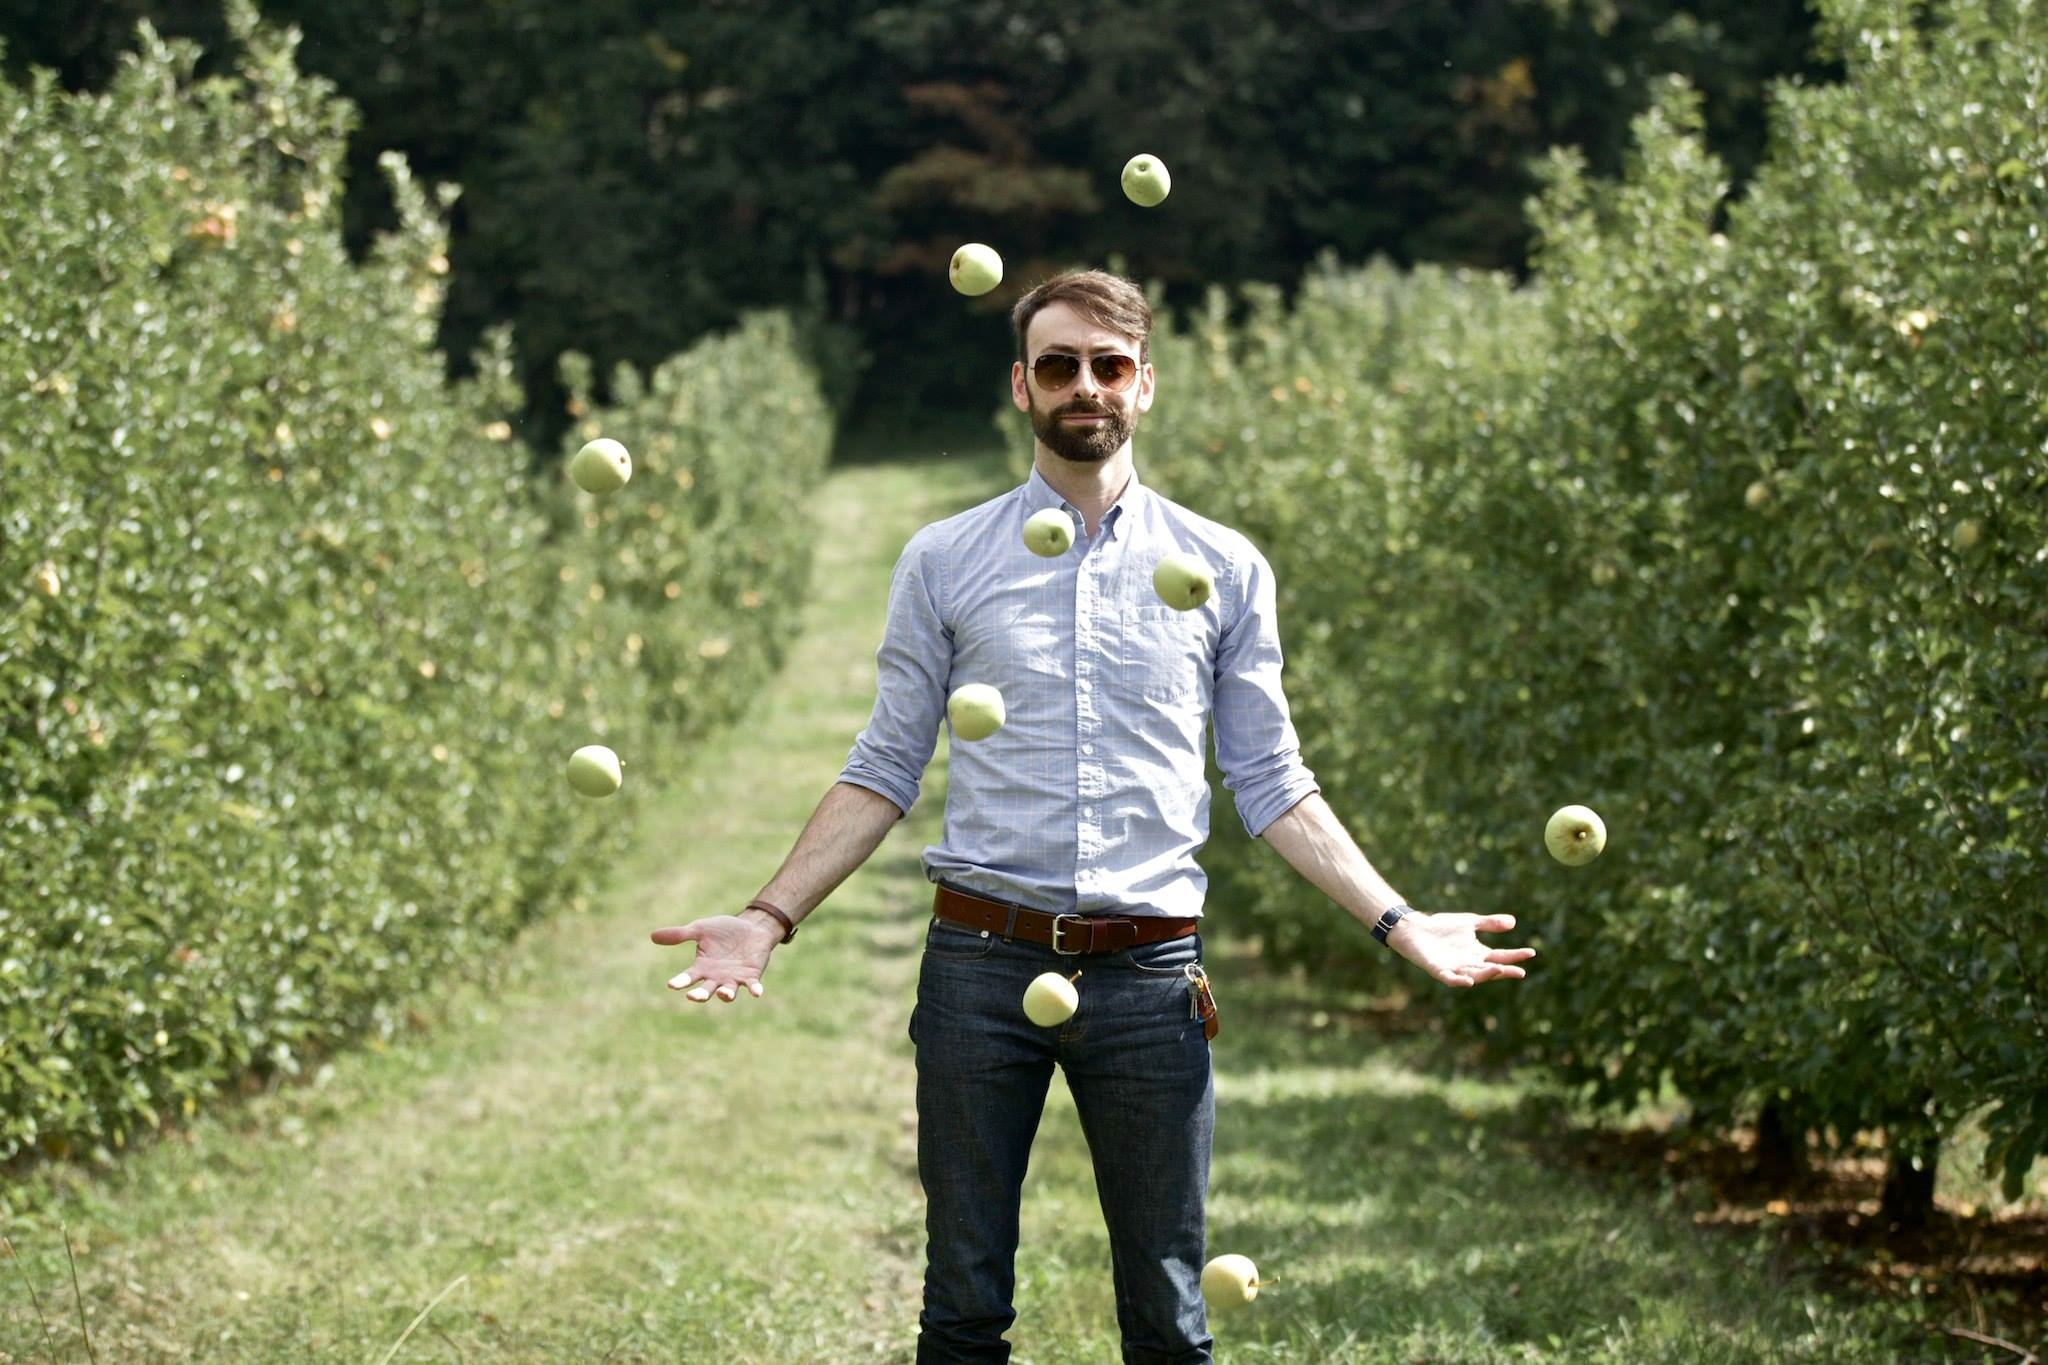 Alright, so I'm not really juggling. I actually just had 5 apples in each arm and awkwardly threw them in the air and then placed my hands out like that to look like I was using the force or something. So yeah, Dave has a really cool camera that could catch this. Neat.